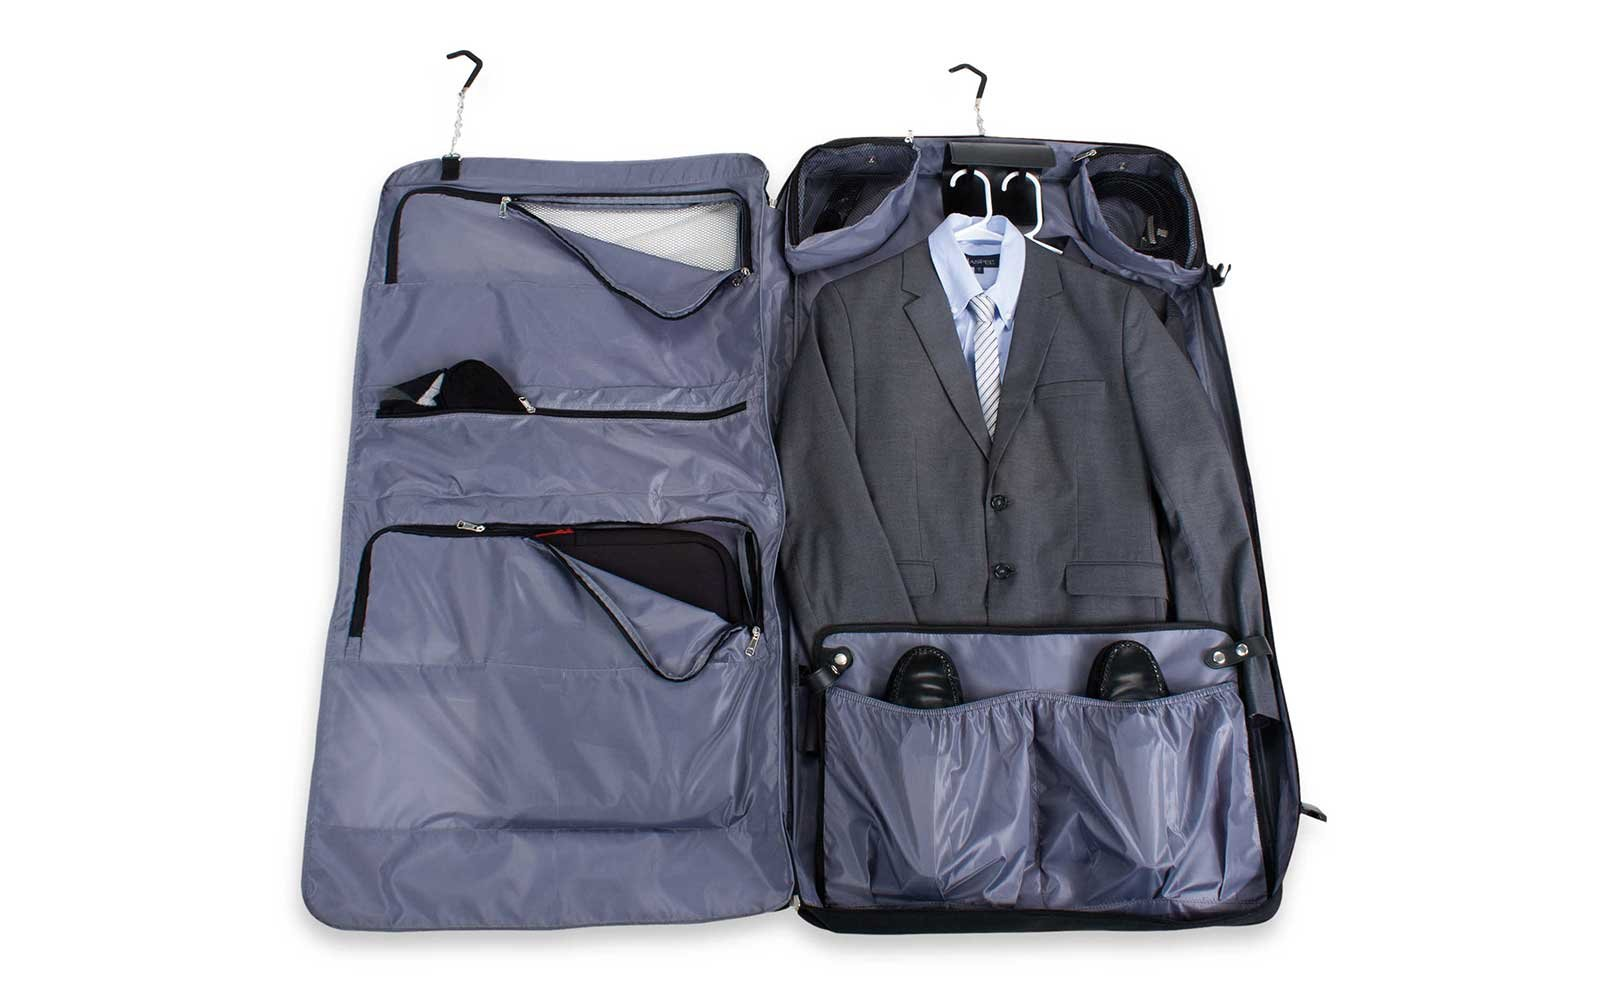 Garment Bags for Travelers